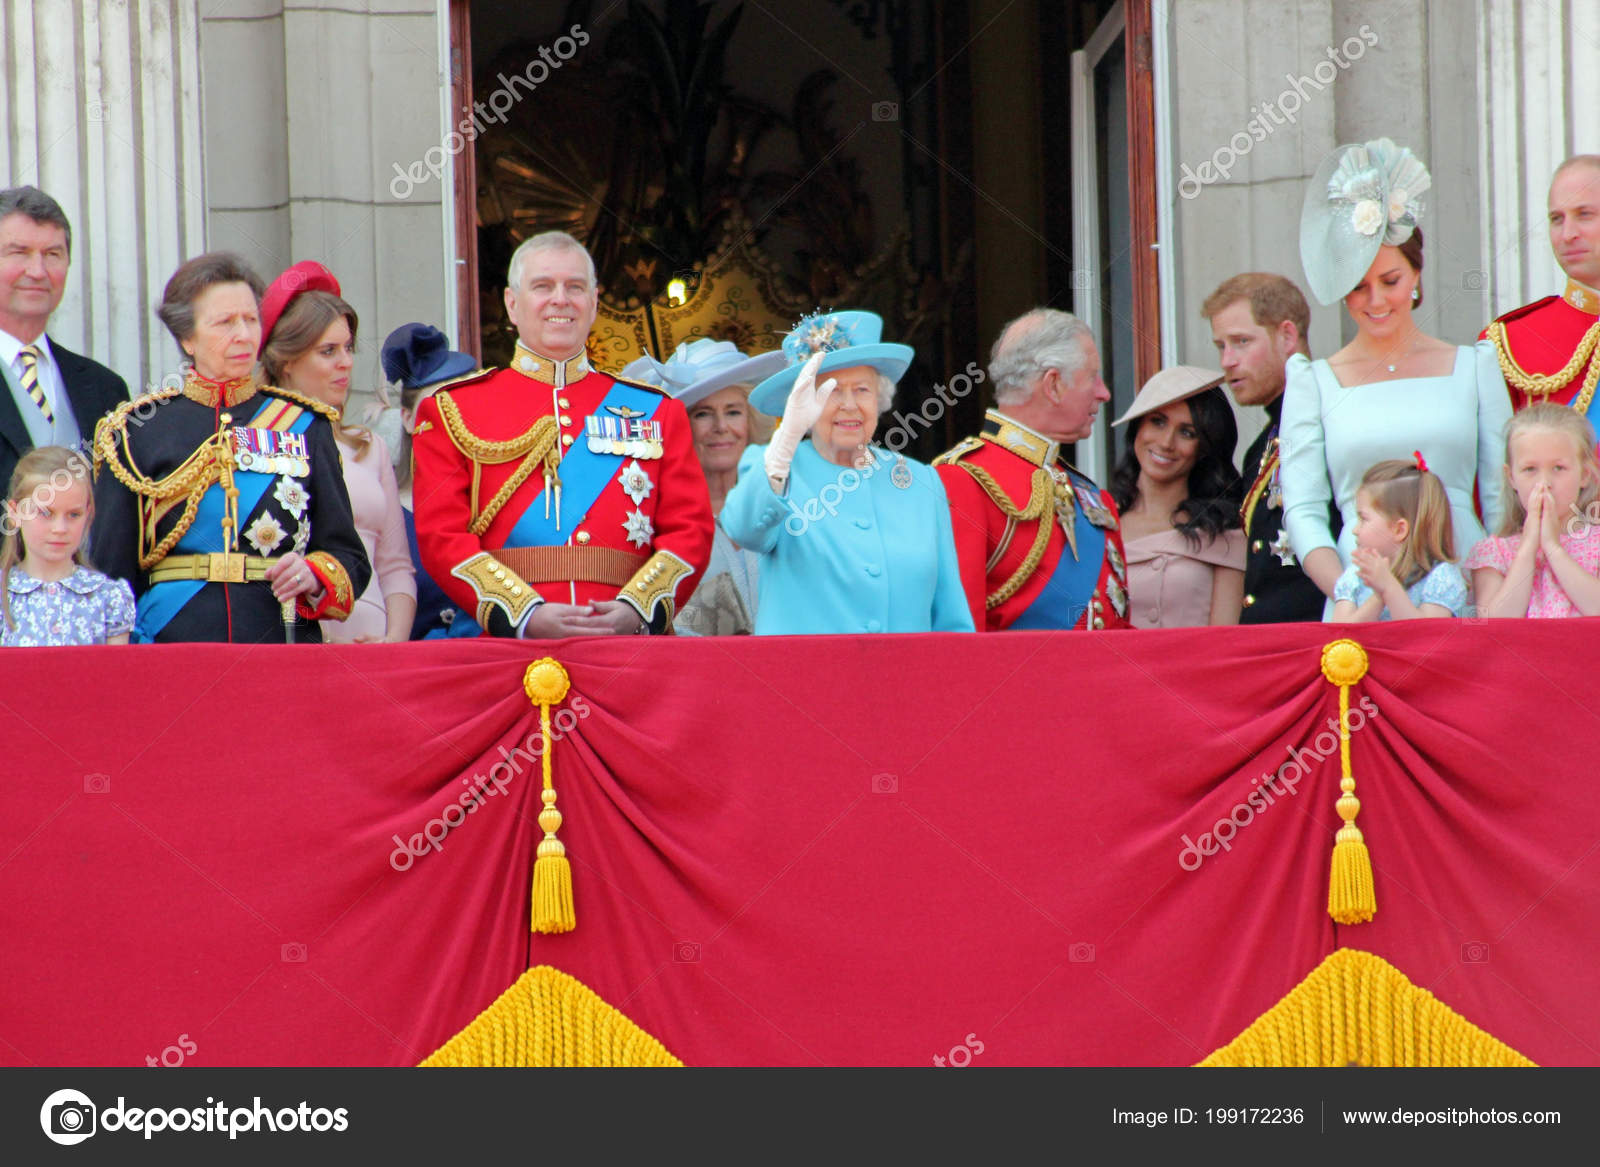 Queen Elizabeth Konigsfamilie Buckingham Palace London Juni 2018